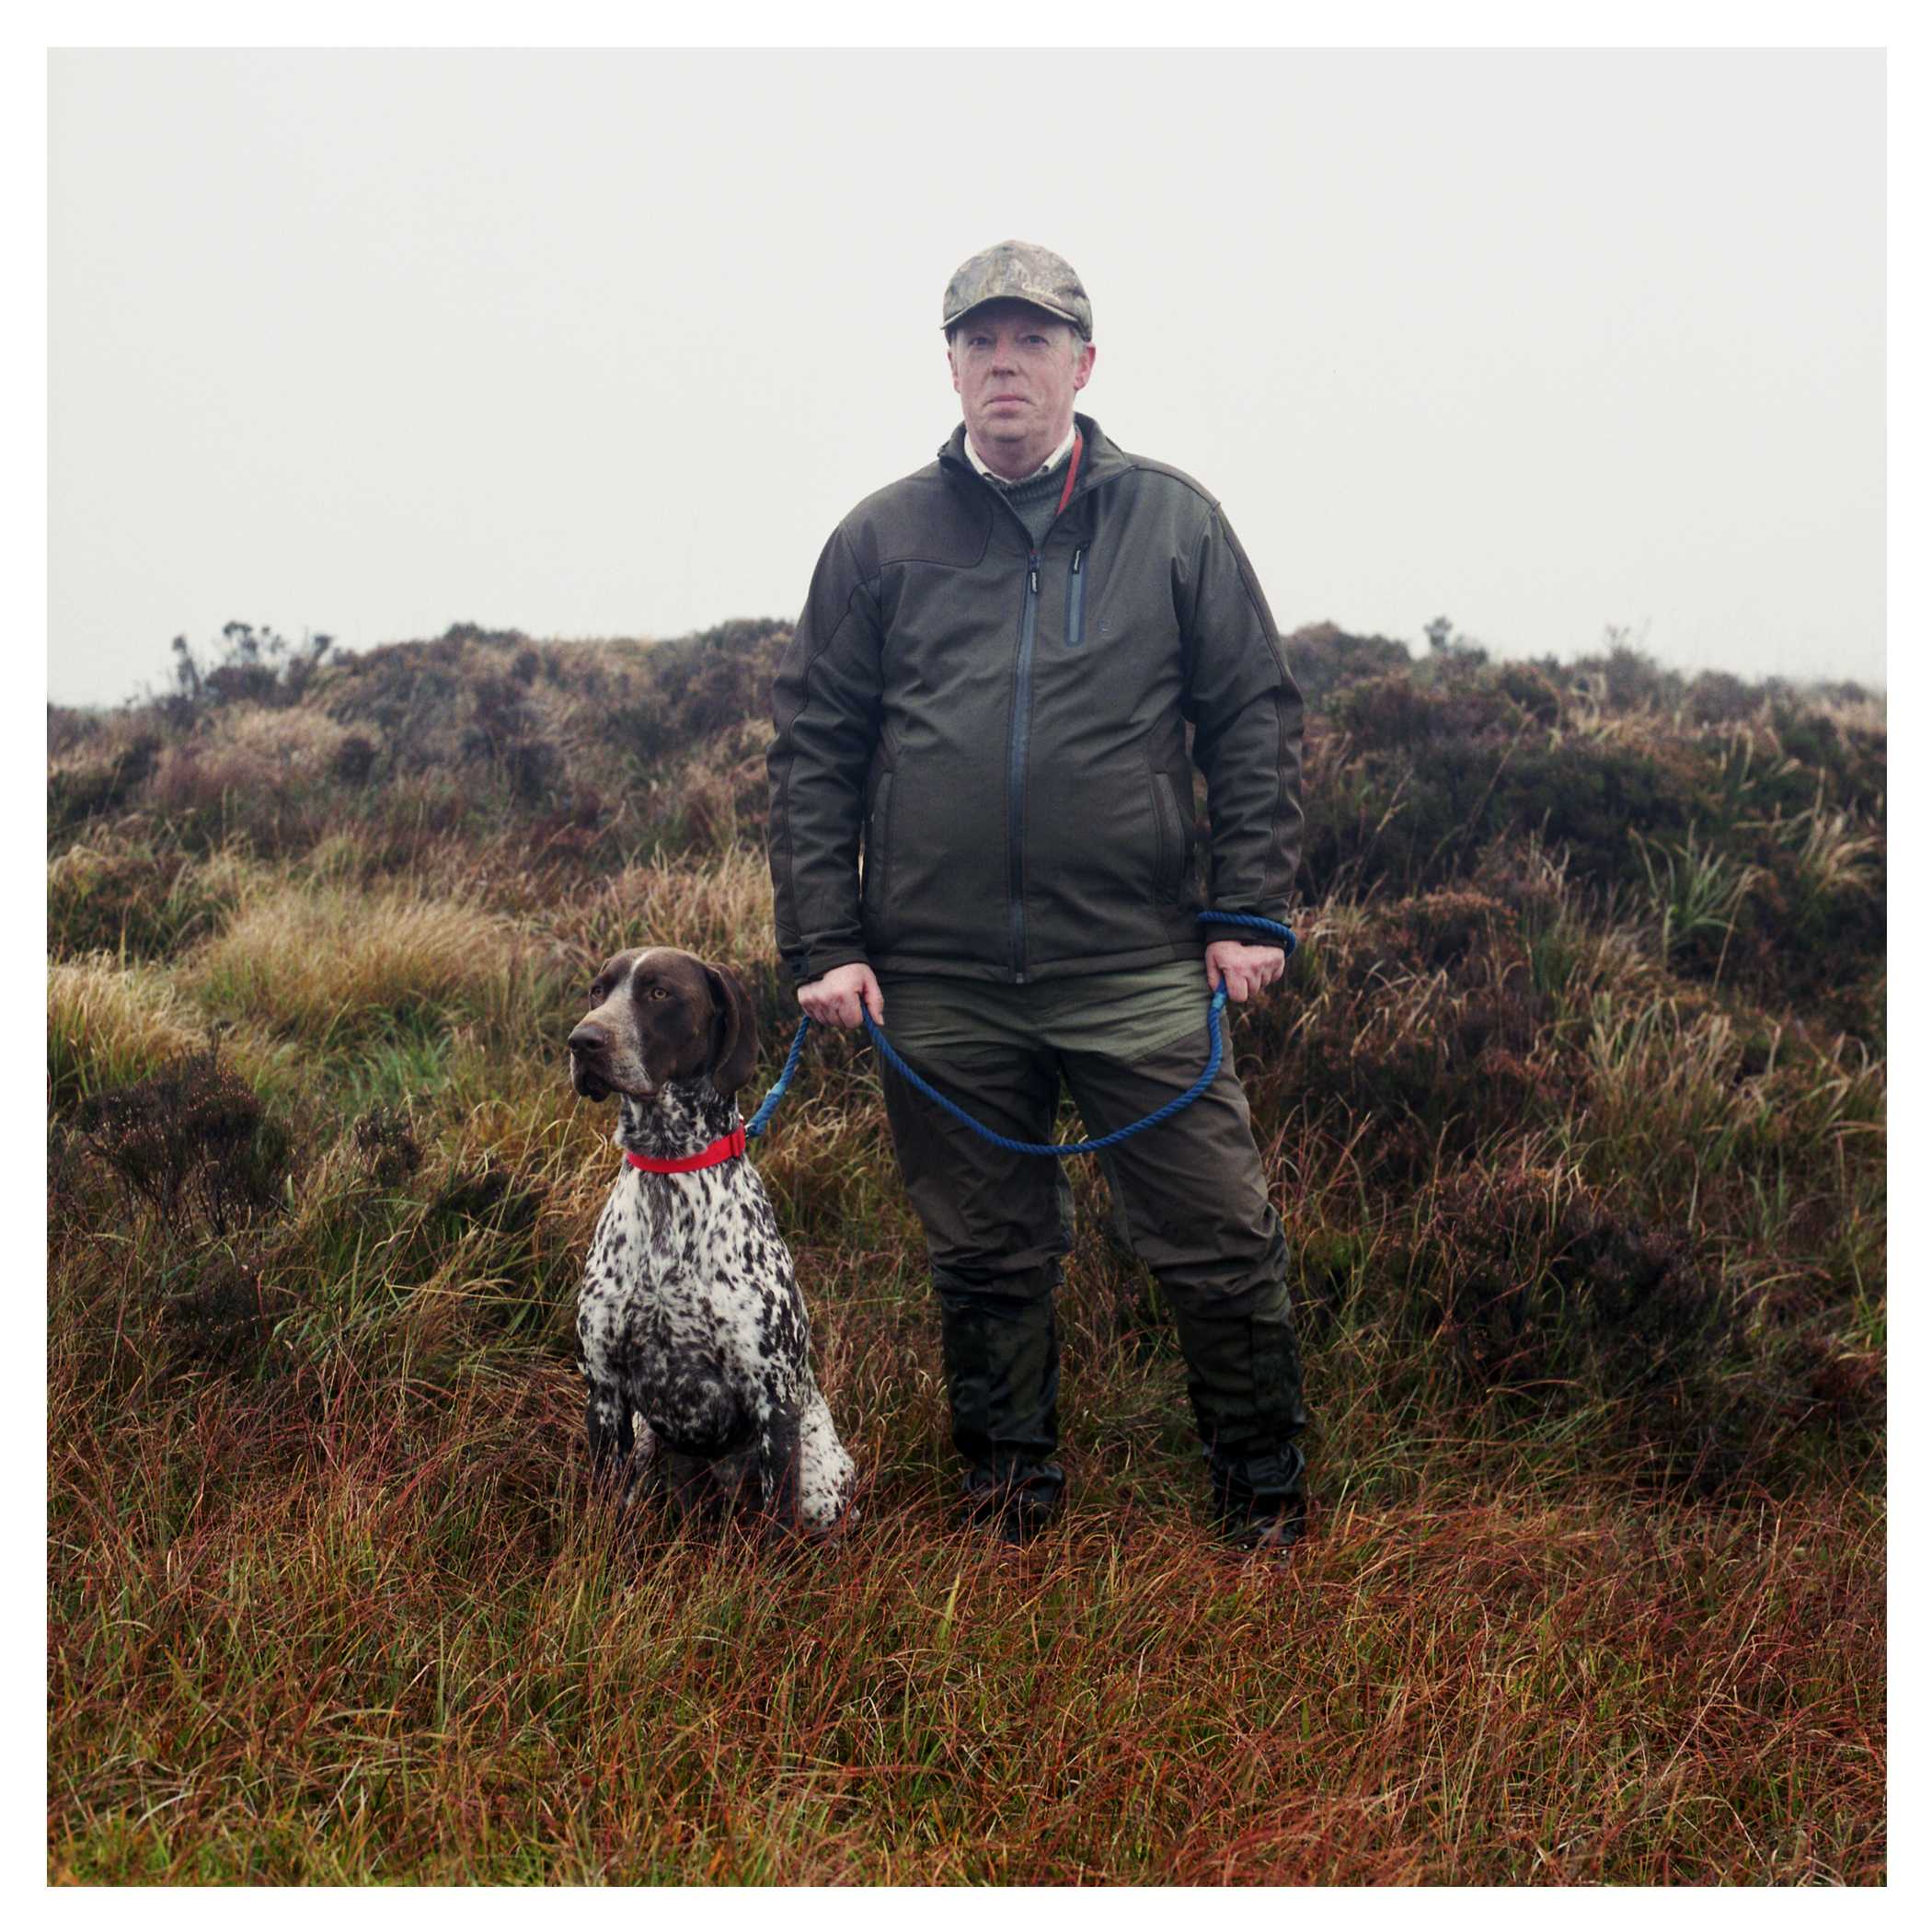 Colm McDaid with German Short Haired Pointer - Flint.